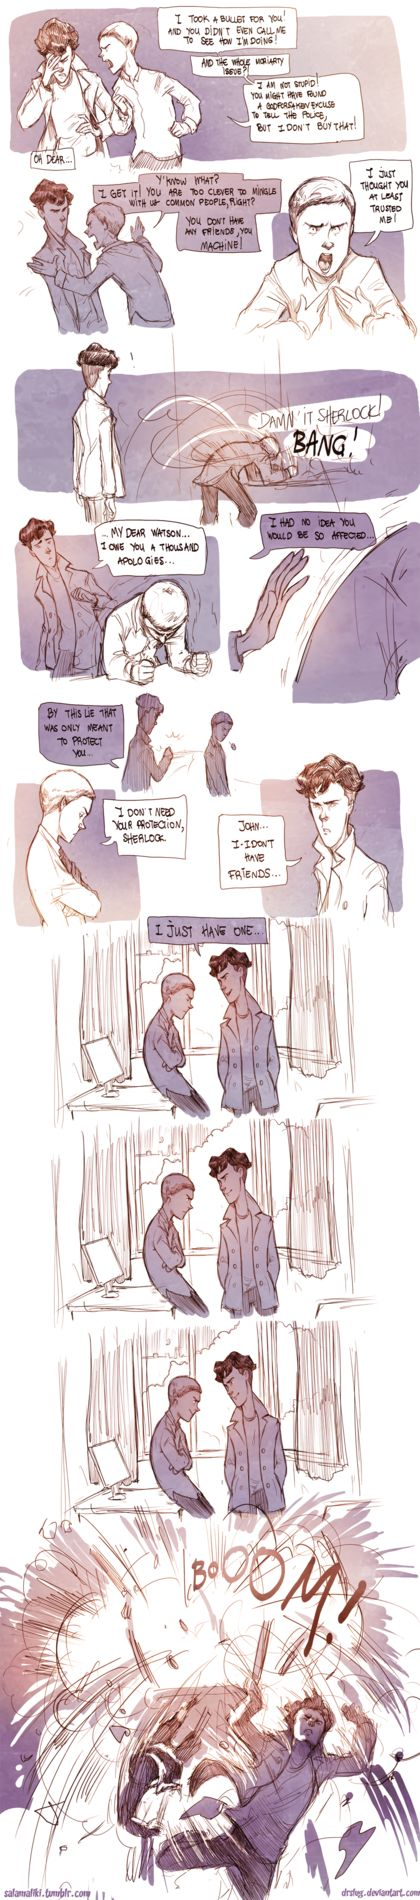 Teen Sherlock - Irene Pt4 by DrSlug on deviantART